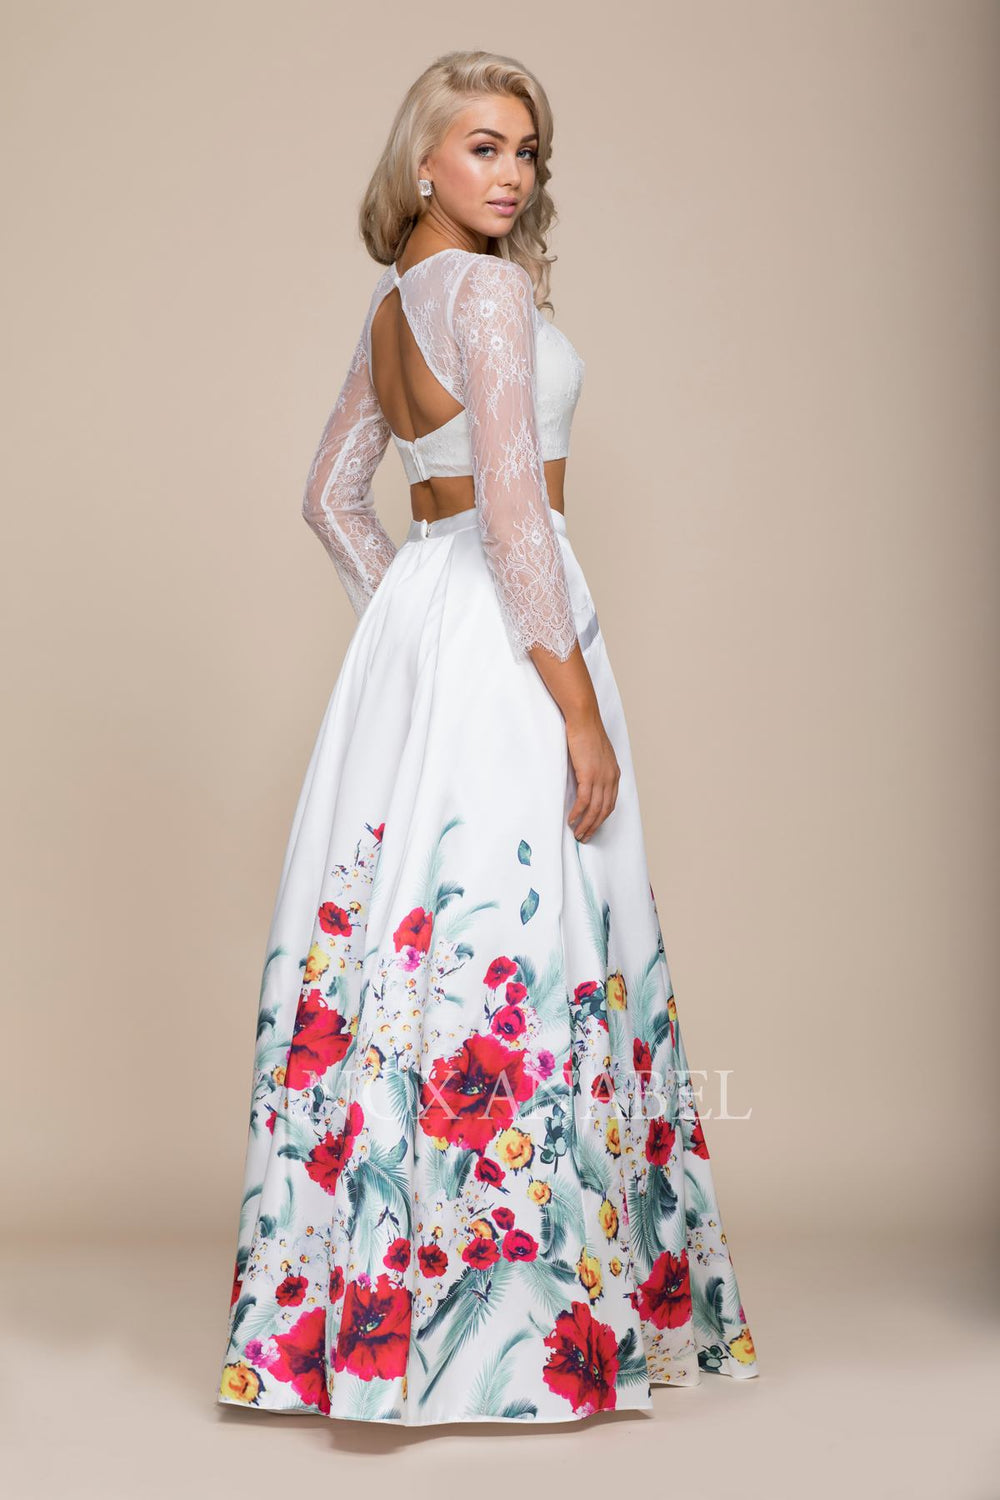 LONG SLEEVE LACED TOP FLORAL EVENING BALL GOWN 8353 BY NARIANNA